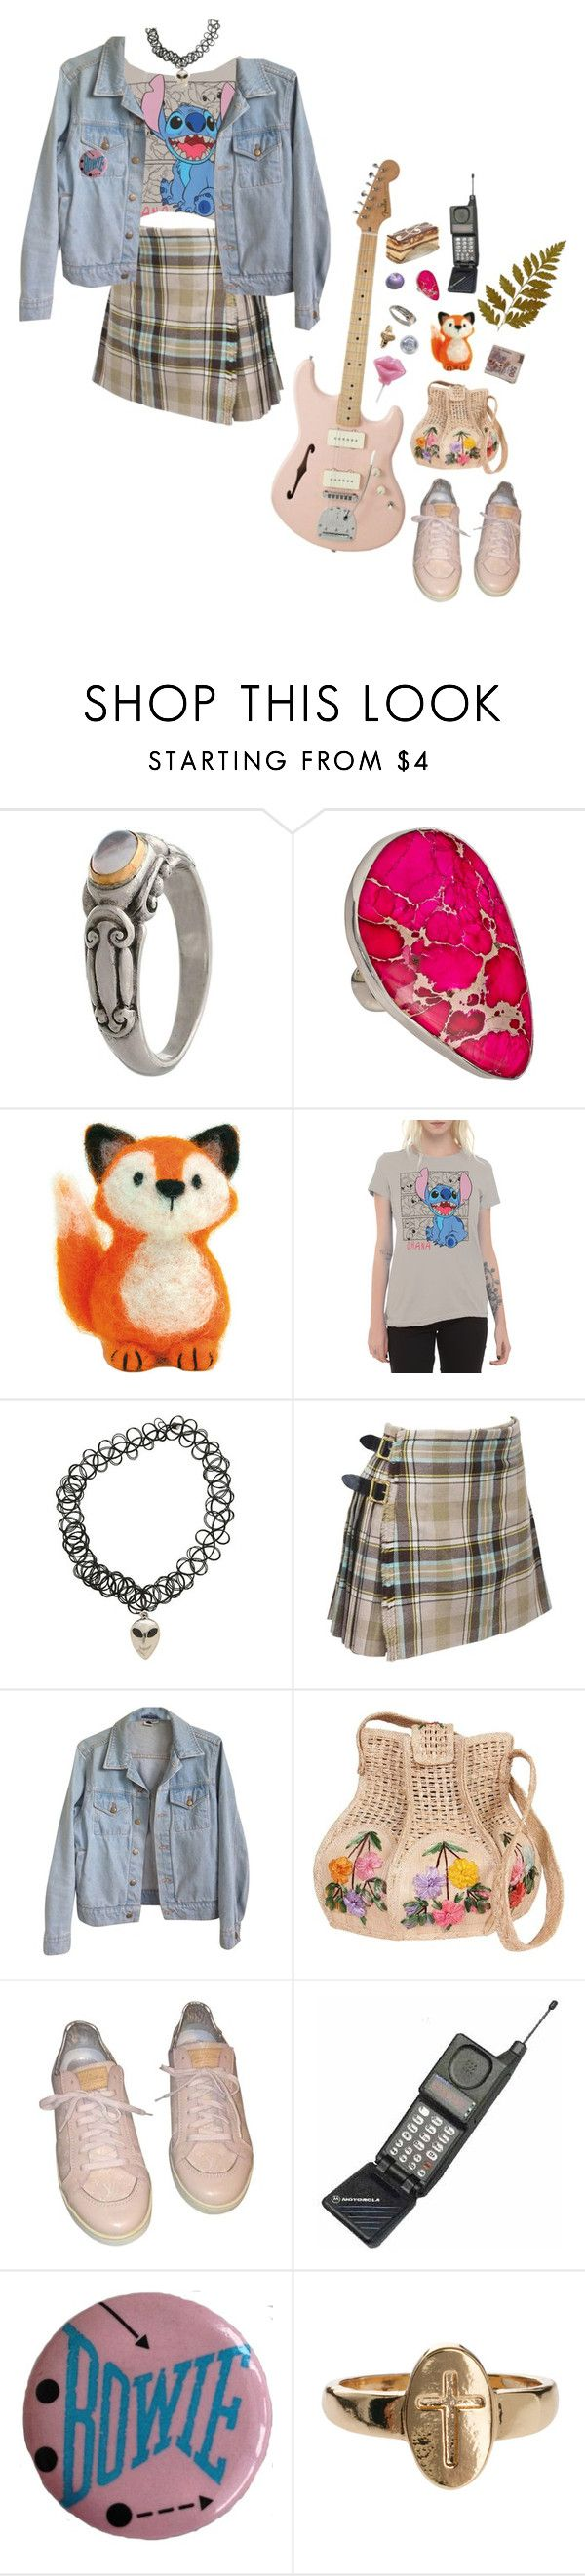 """""""I am the egg man"""" by queenofrocknroll ❤ liked on Polyvore featuring NOVICA, Charles Albert, Disney, Vivienne Westwood, American Apparel, Louis Vuitton and ASOS"""